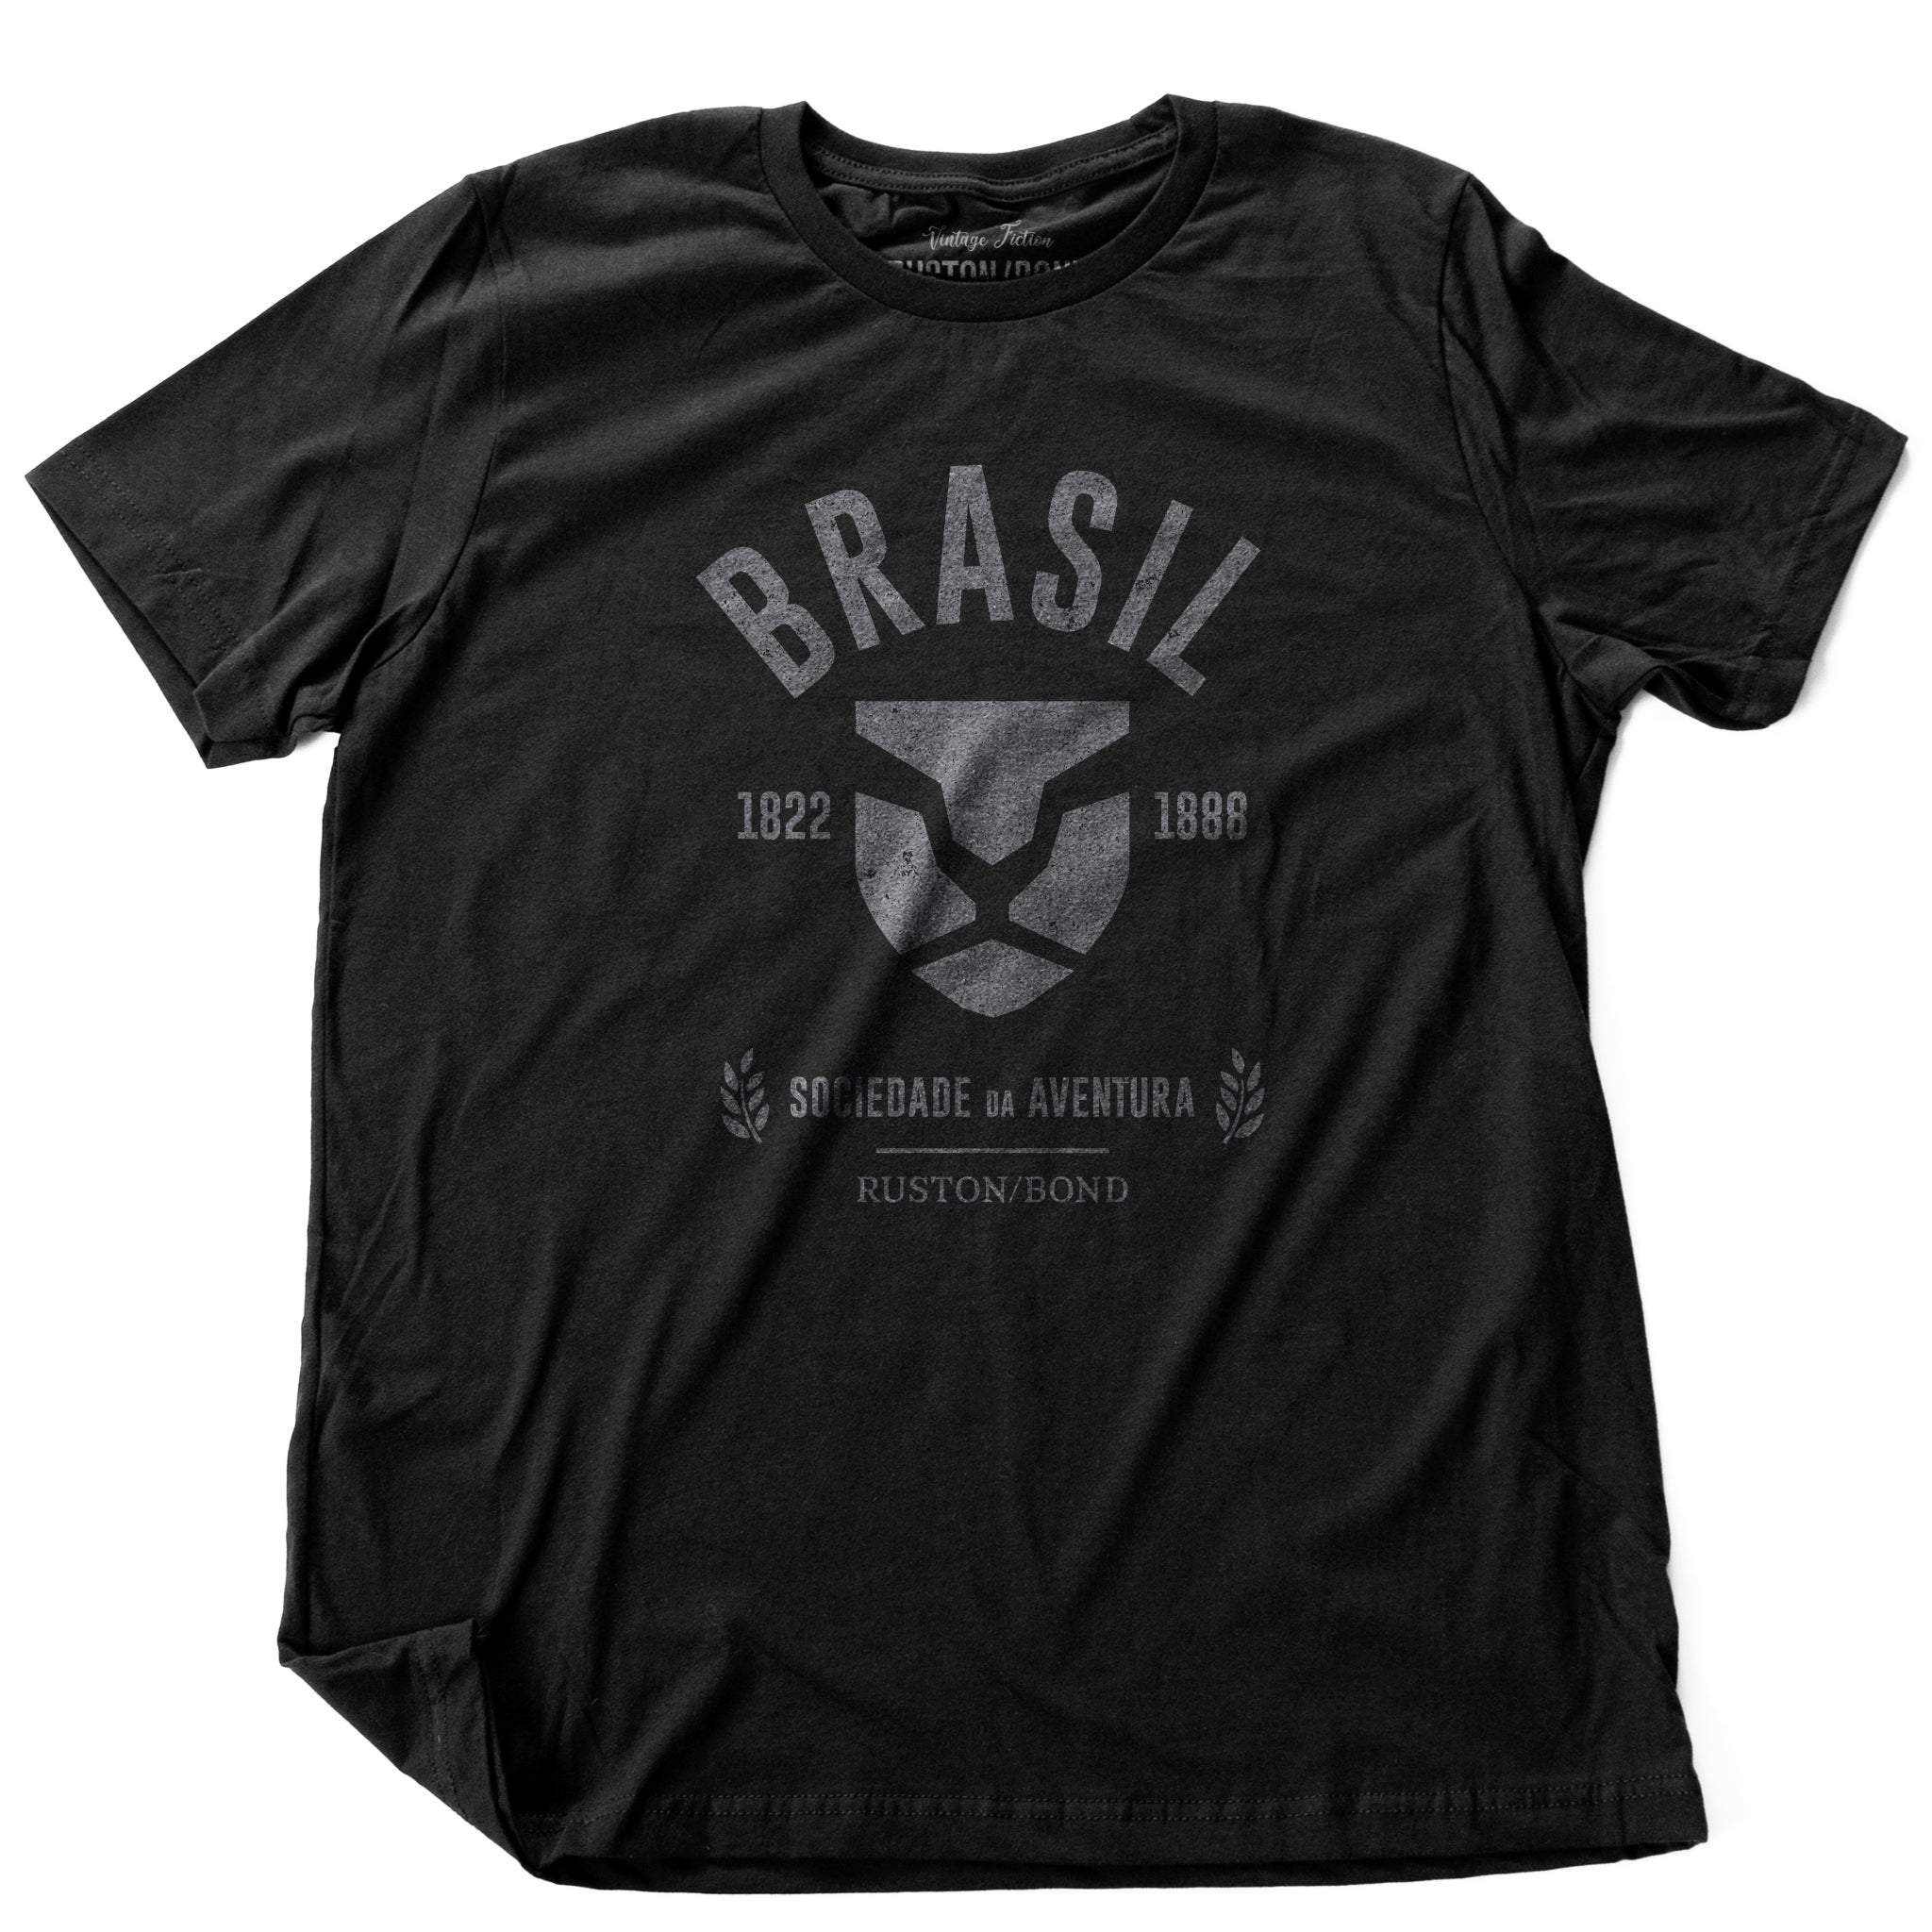 Black fashion, retro-inspired t-shirt featuring classic graphic of a strong, minimalist Lion head, for a fictional adventure society in Brazil / Brasil from 1822 to 1888, by the brand Ruston/Bond. From wolfsaint.net